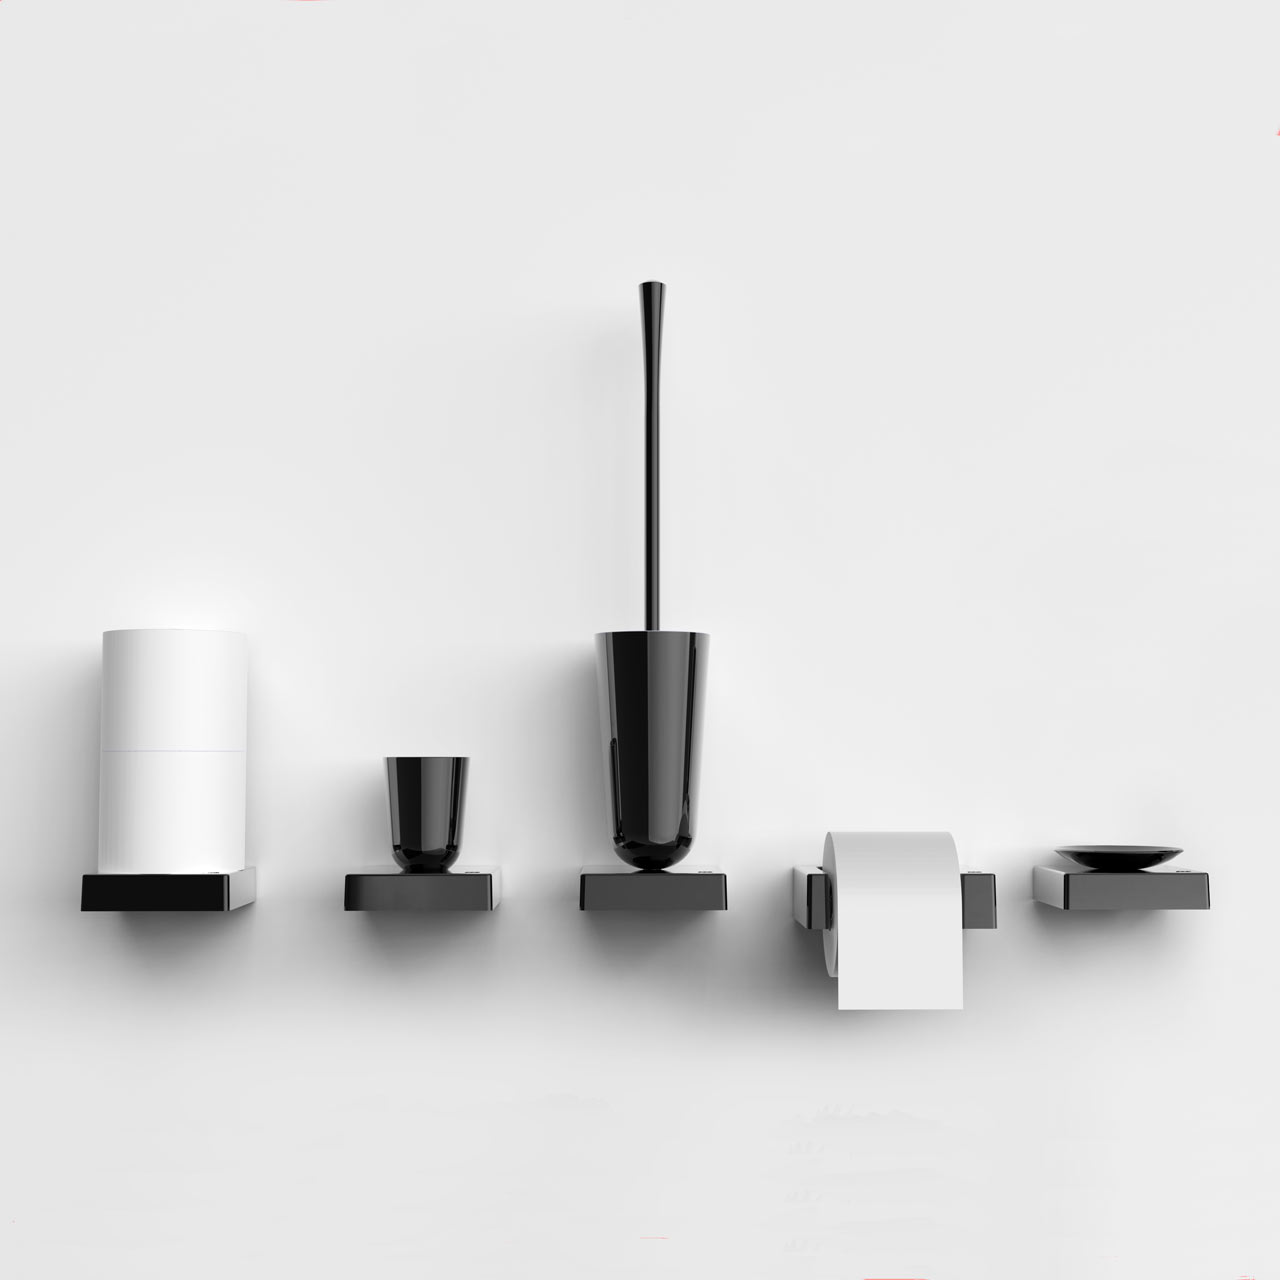 platform a line of bathroom accessories by brad ascalon for pba